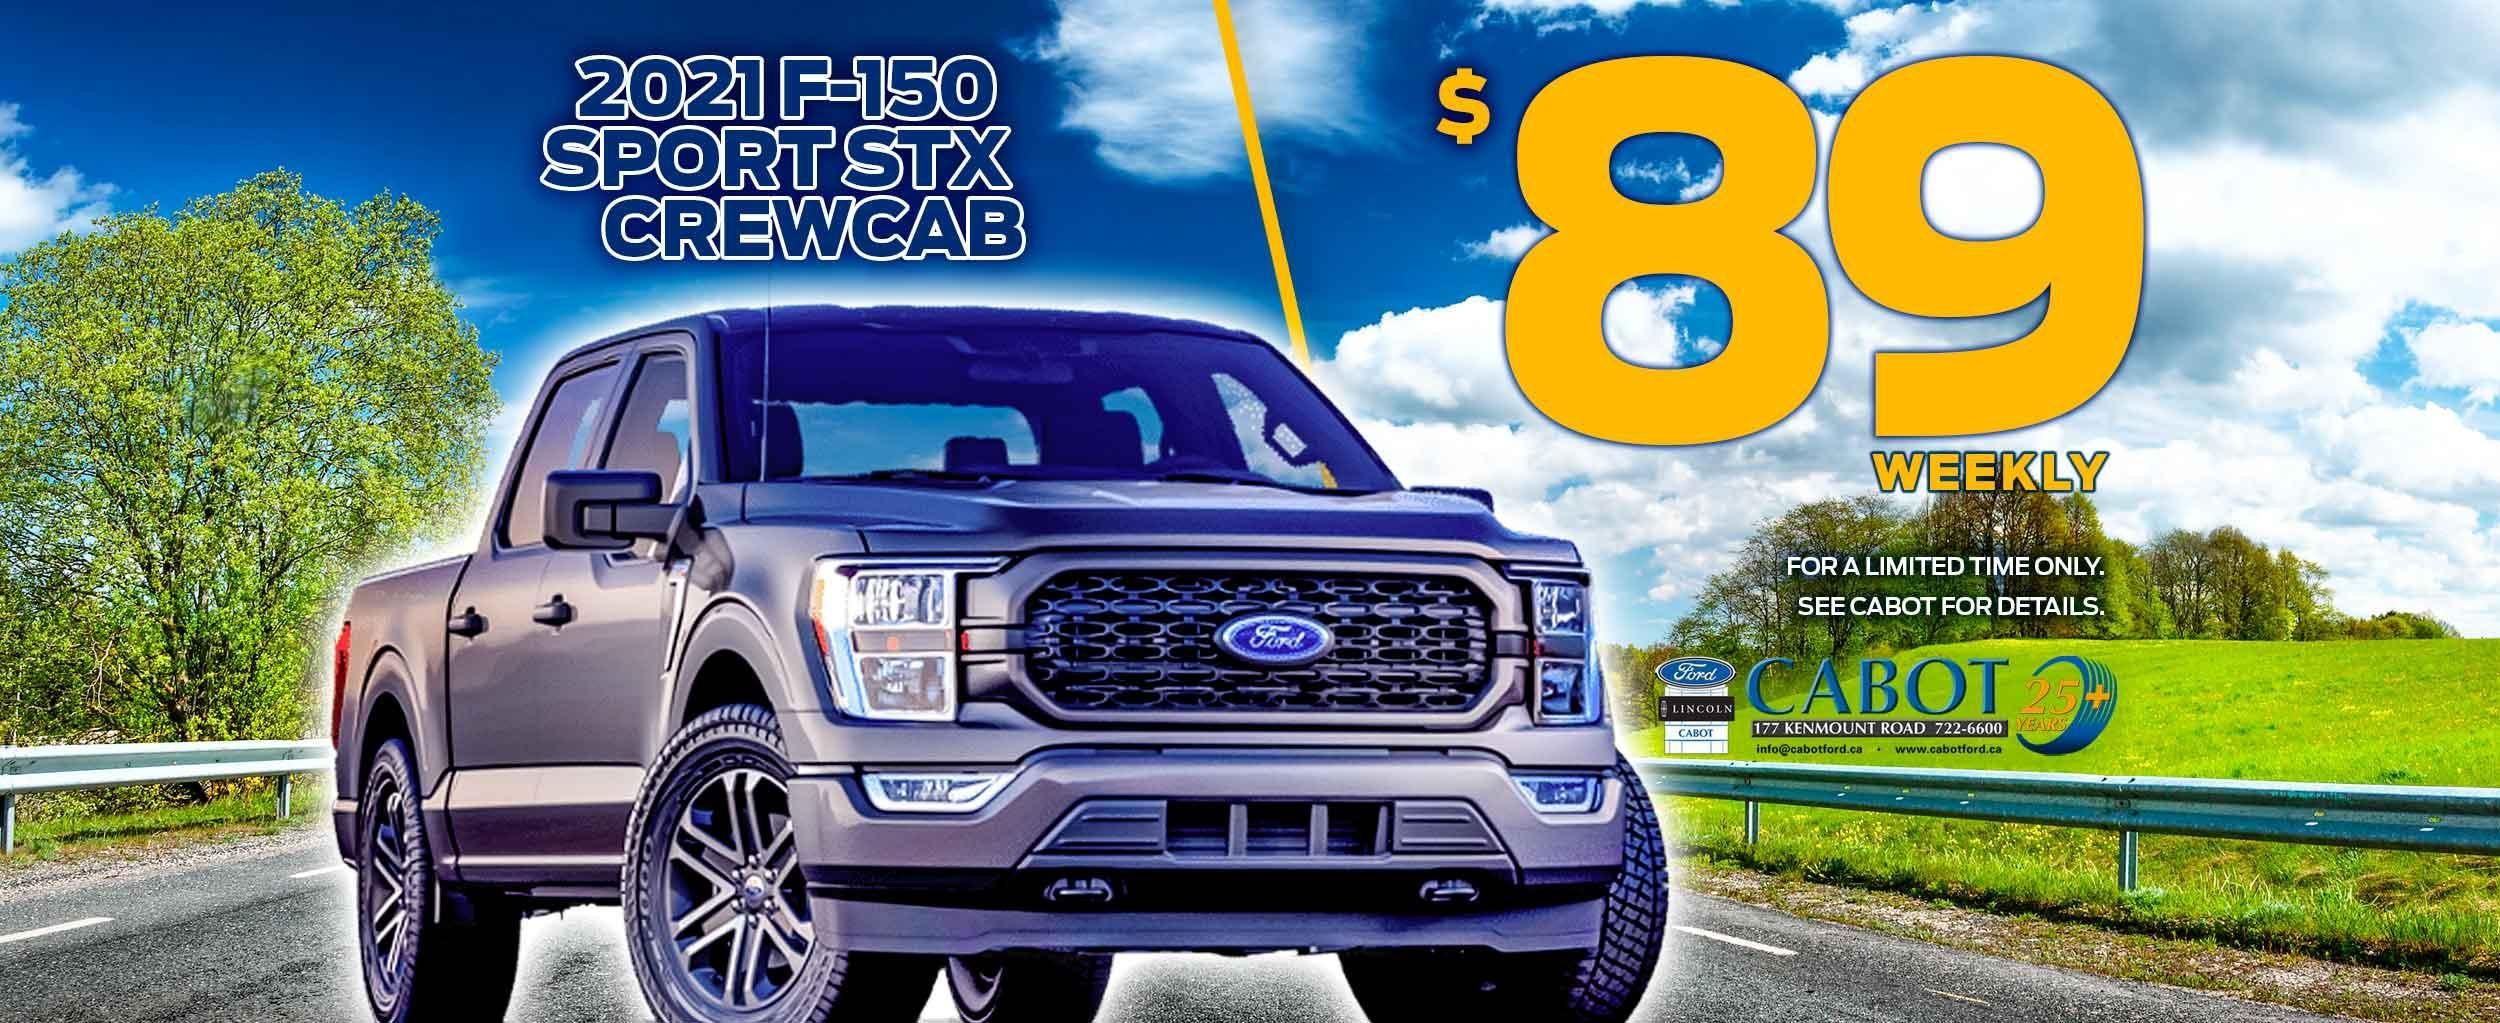 For a limited time only, get the 2021 F-150 STX CREWCAB SPORT for JUST $89 weekly!